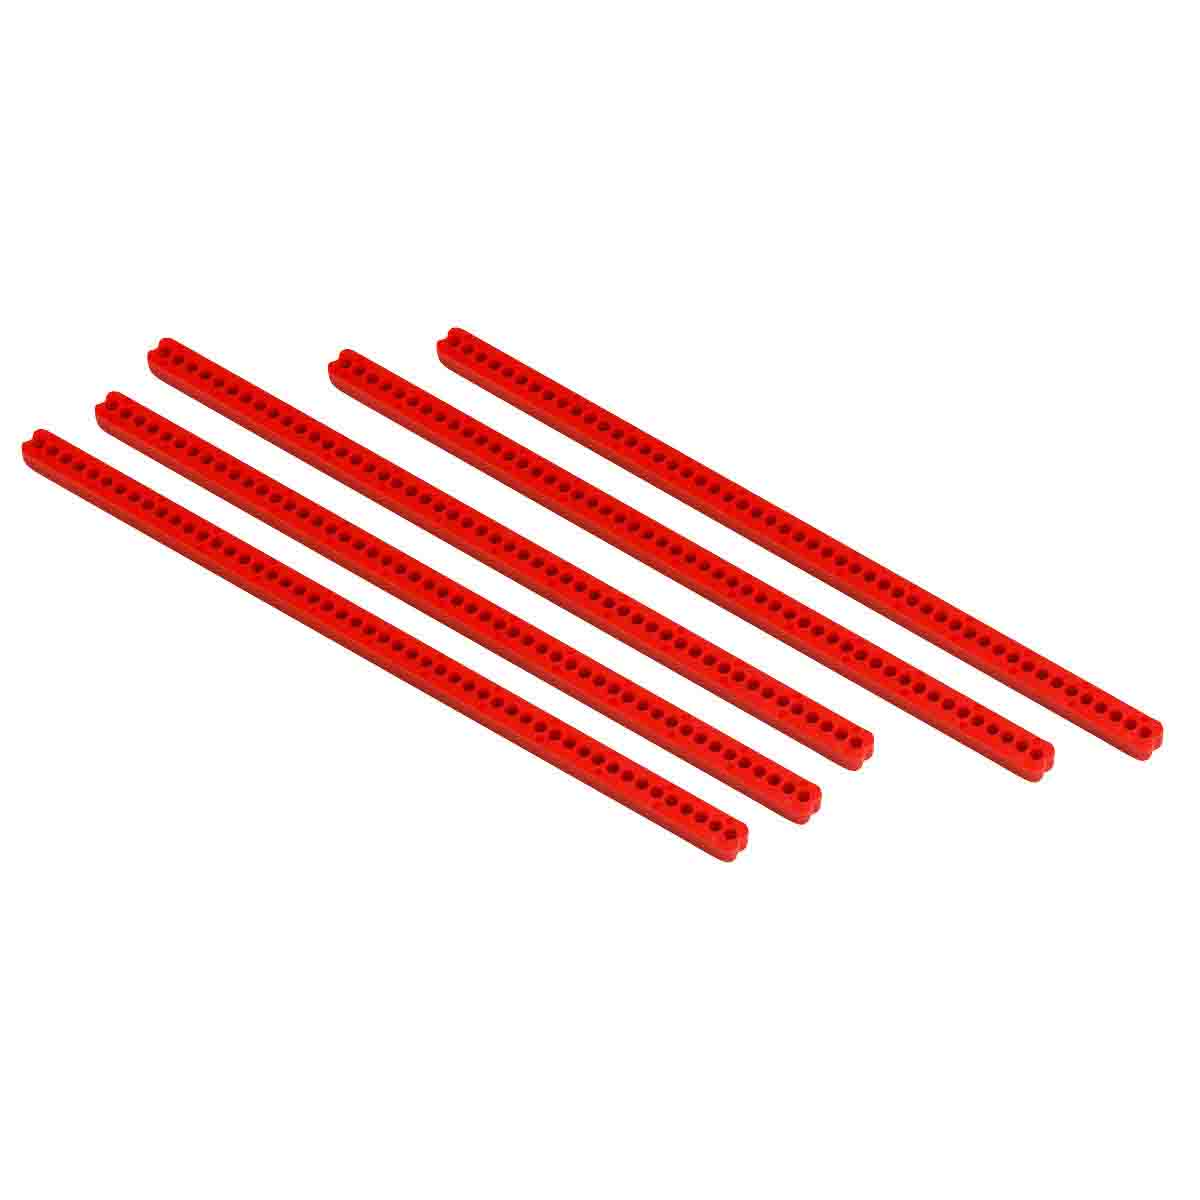 "BRADY 90892 EZ 480/600V 7.6"" REDBLOCKING BAR 5/PK"